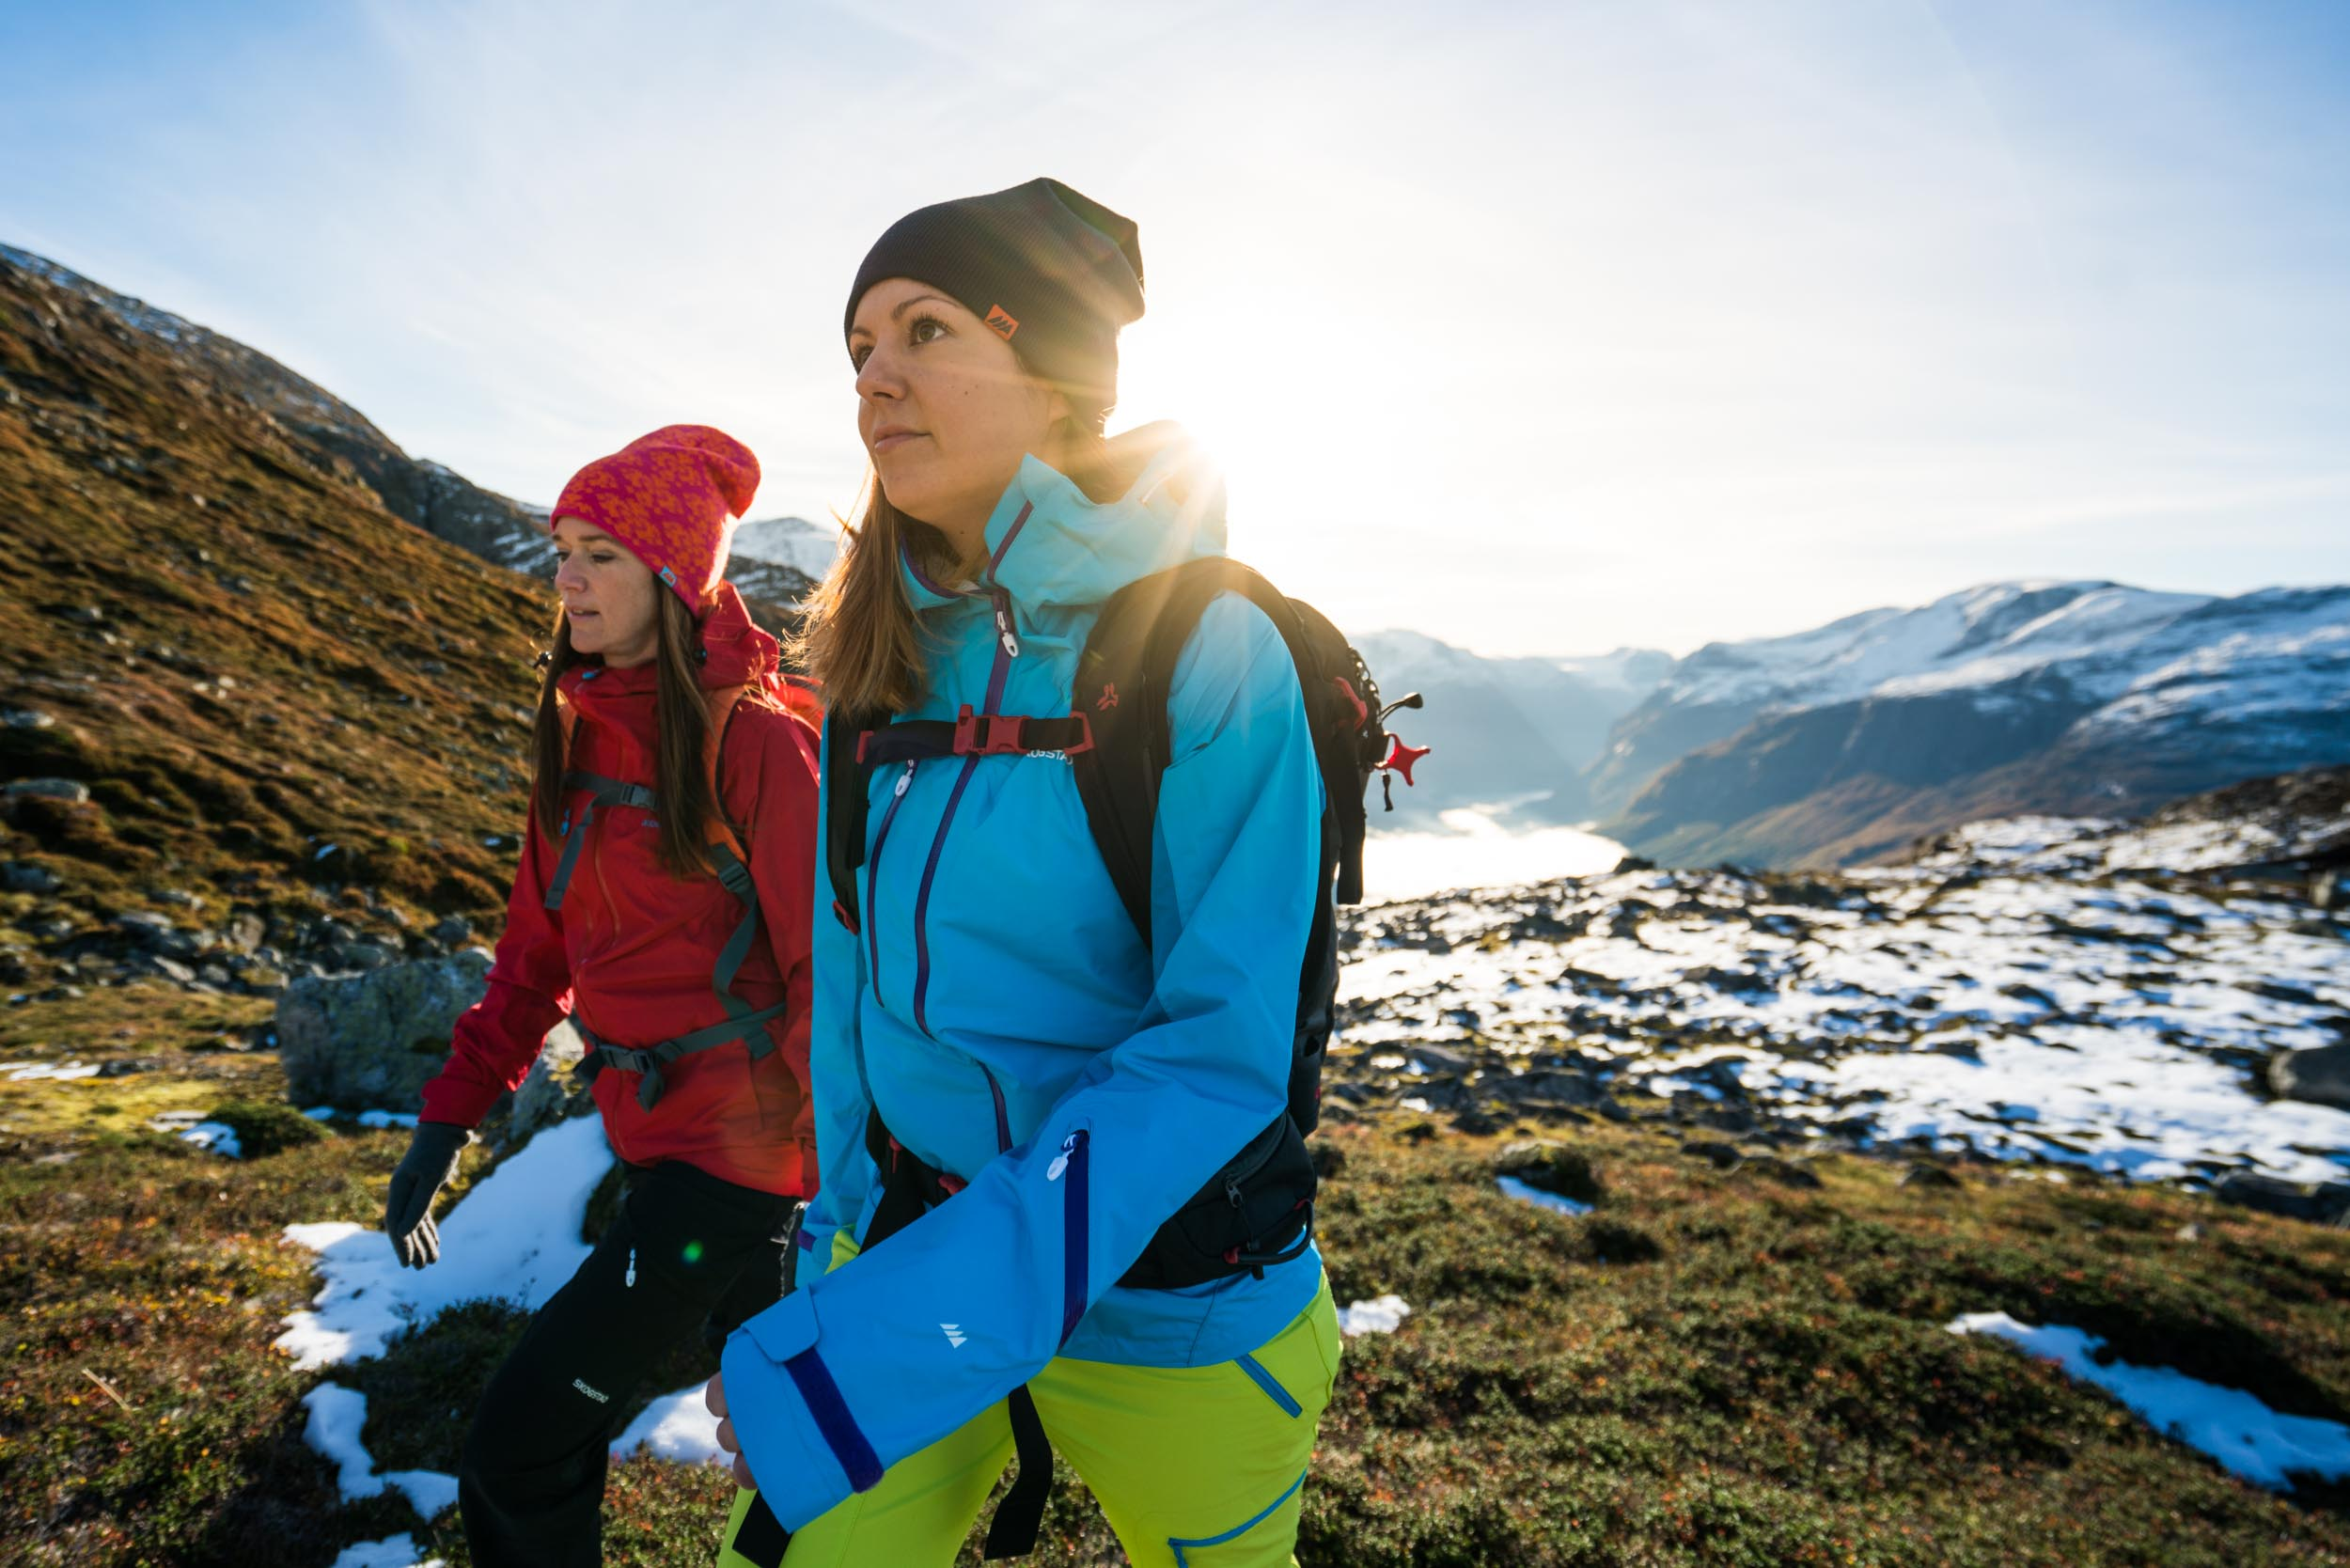 Guided hike: Staurinibba or Årheimsfjellet - A longer day hike from Loen Skylift, included lunch.